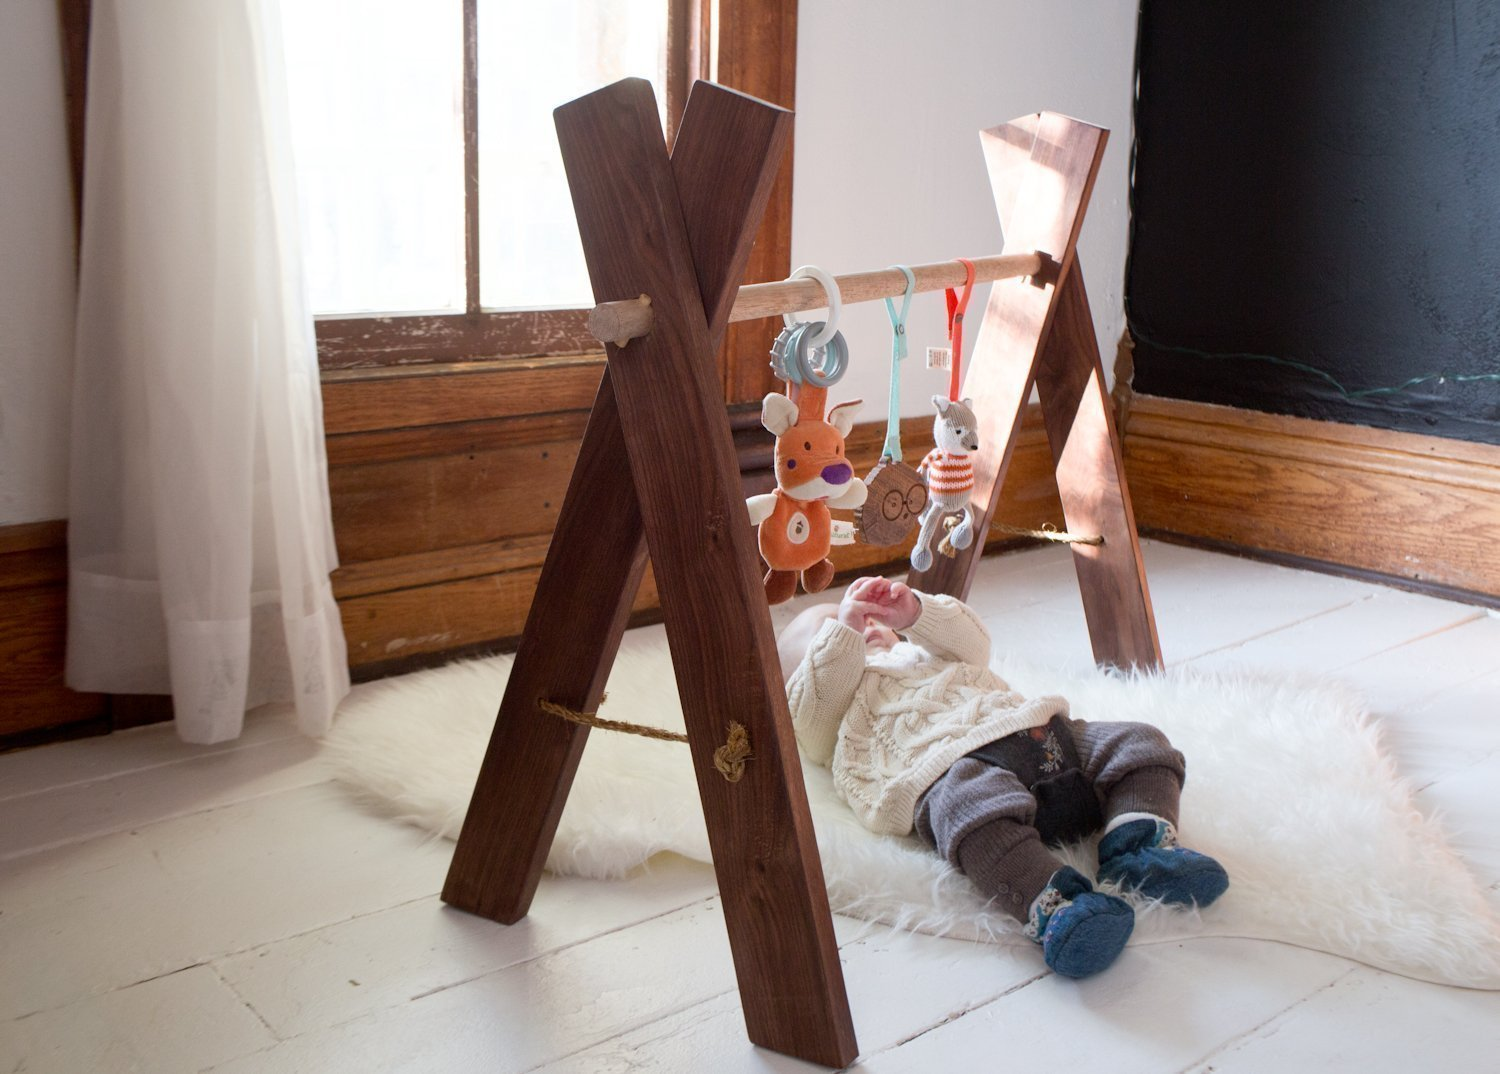 Amazon.com: Natural Wooden Baby Gym   Kids Activity Gym Eco Friendly  Nursery Furniture: Handmade